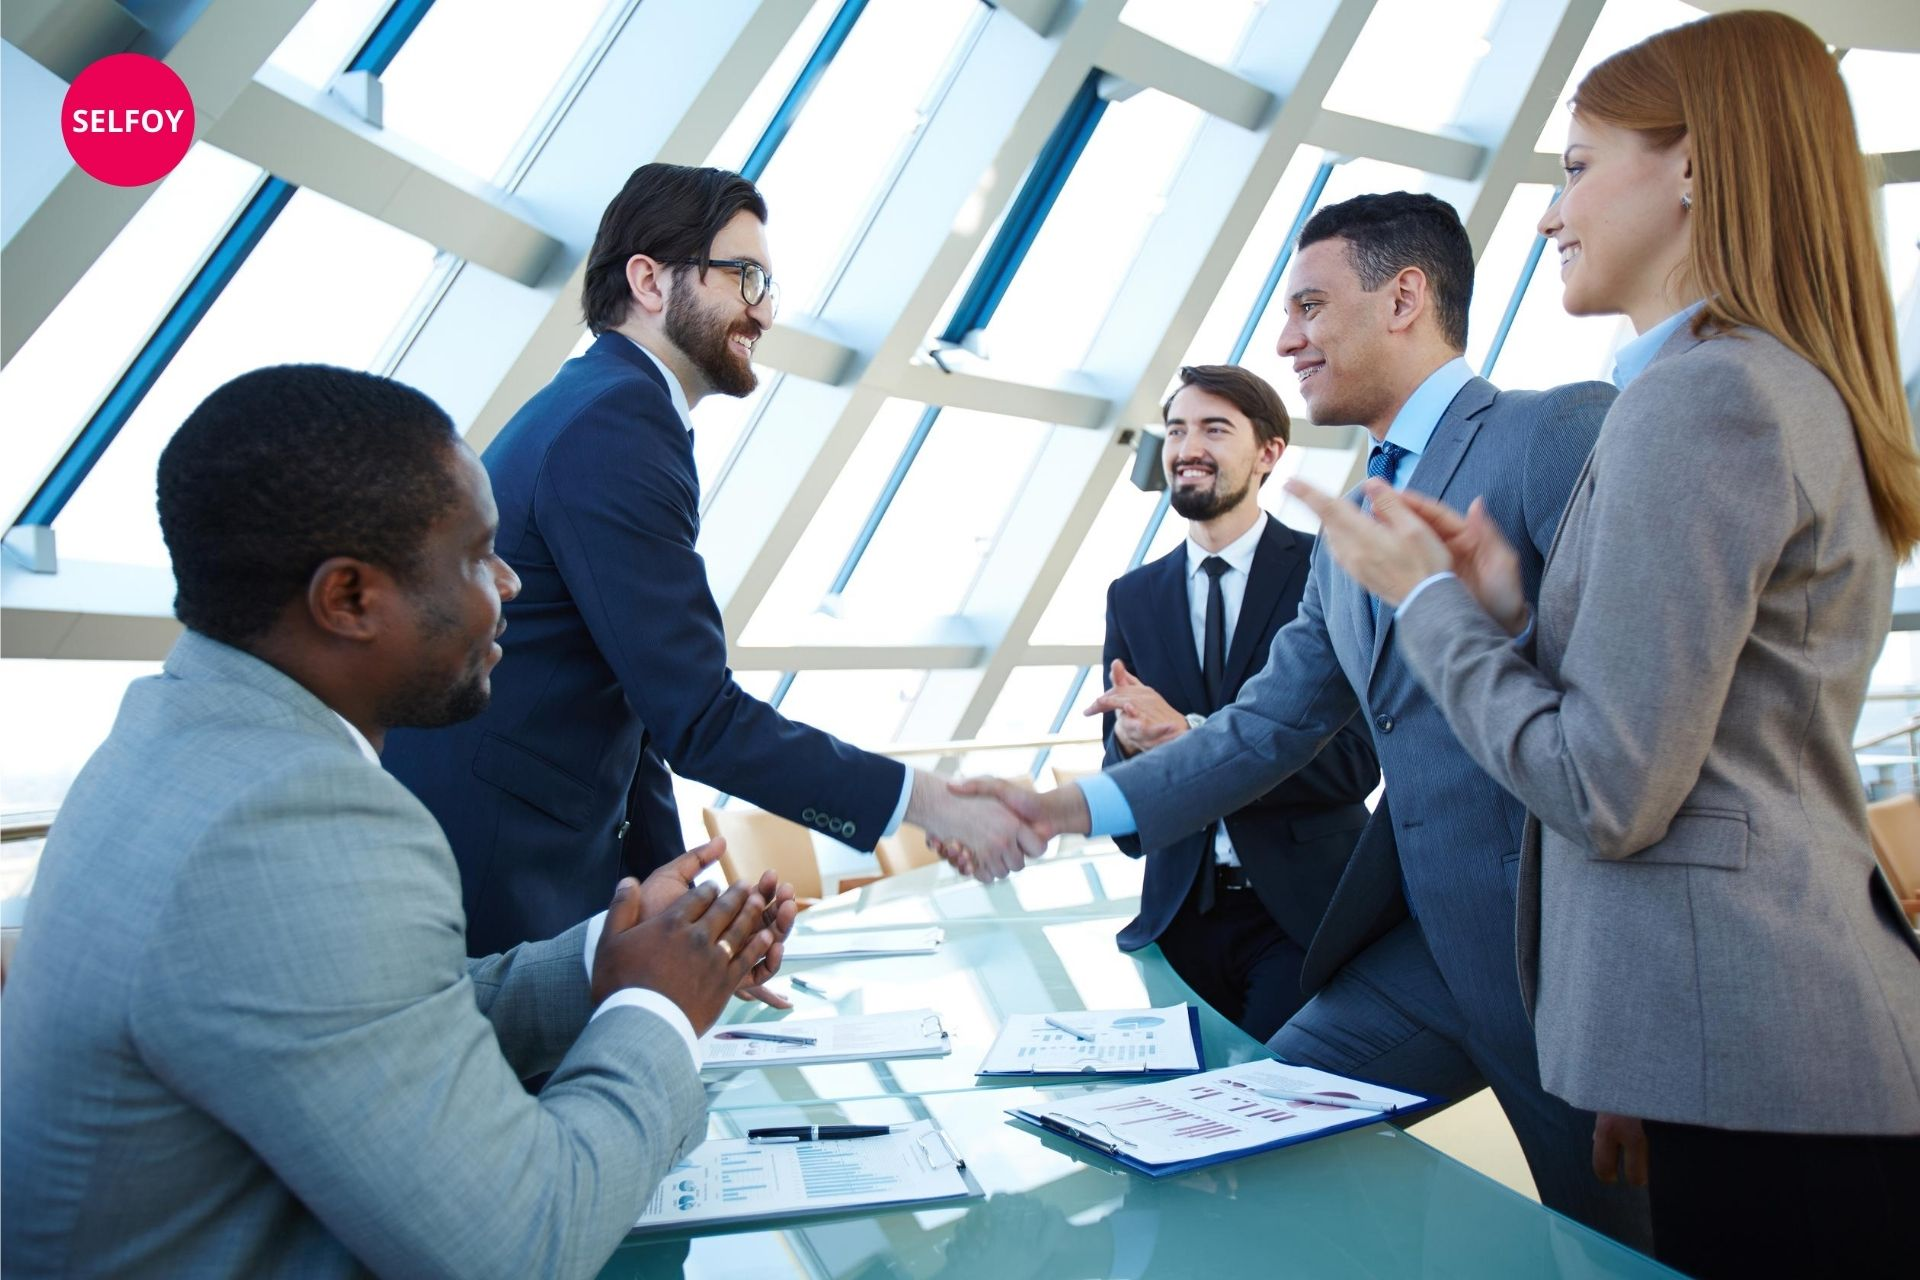 men are hand shaking of each other and showing characteristics of self confidence